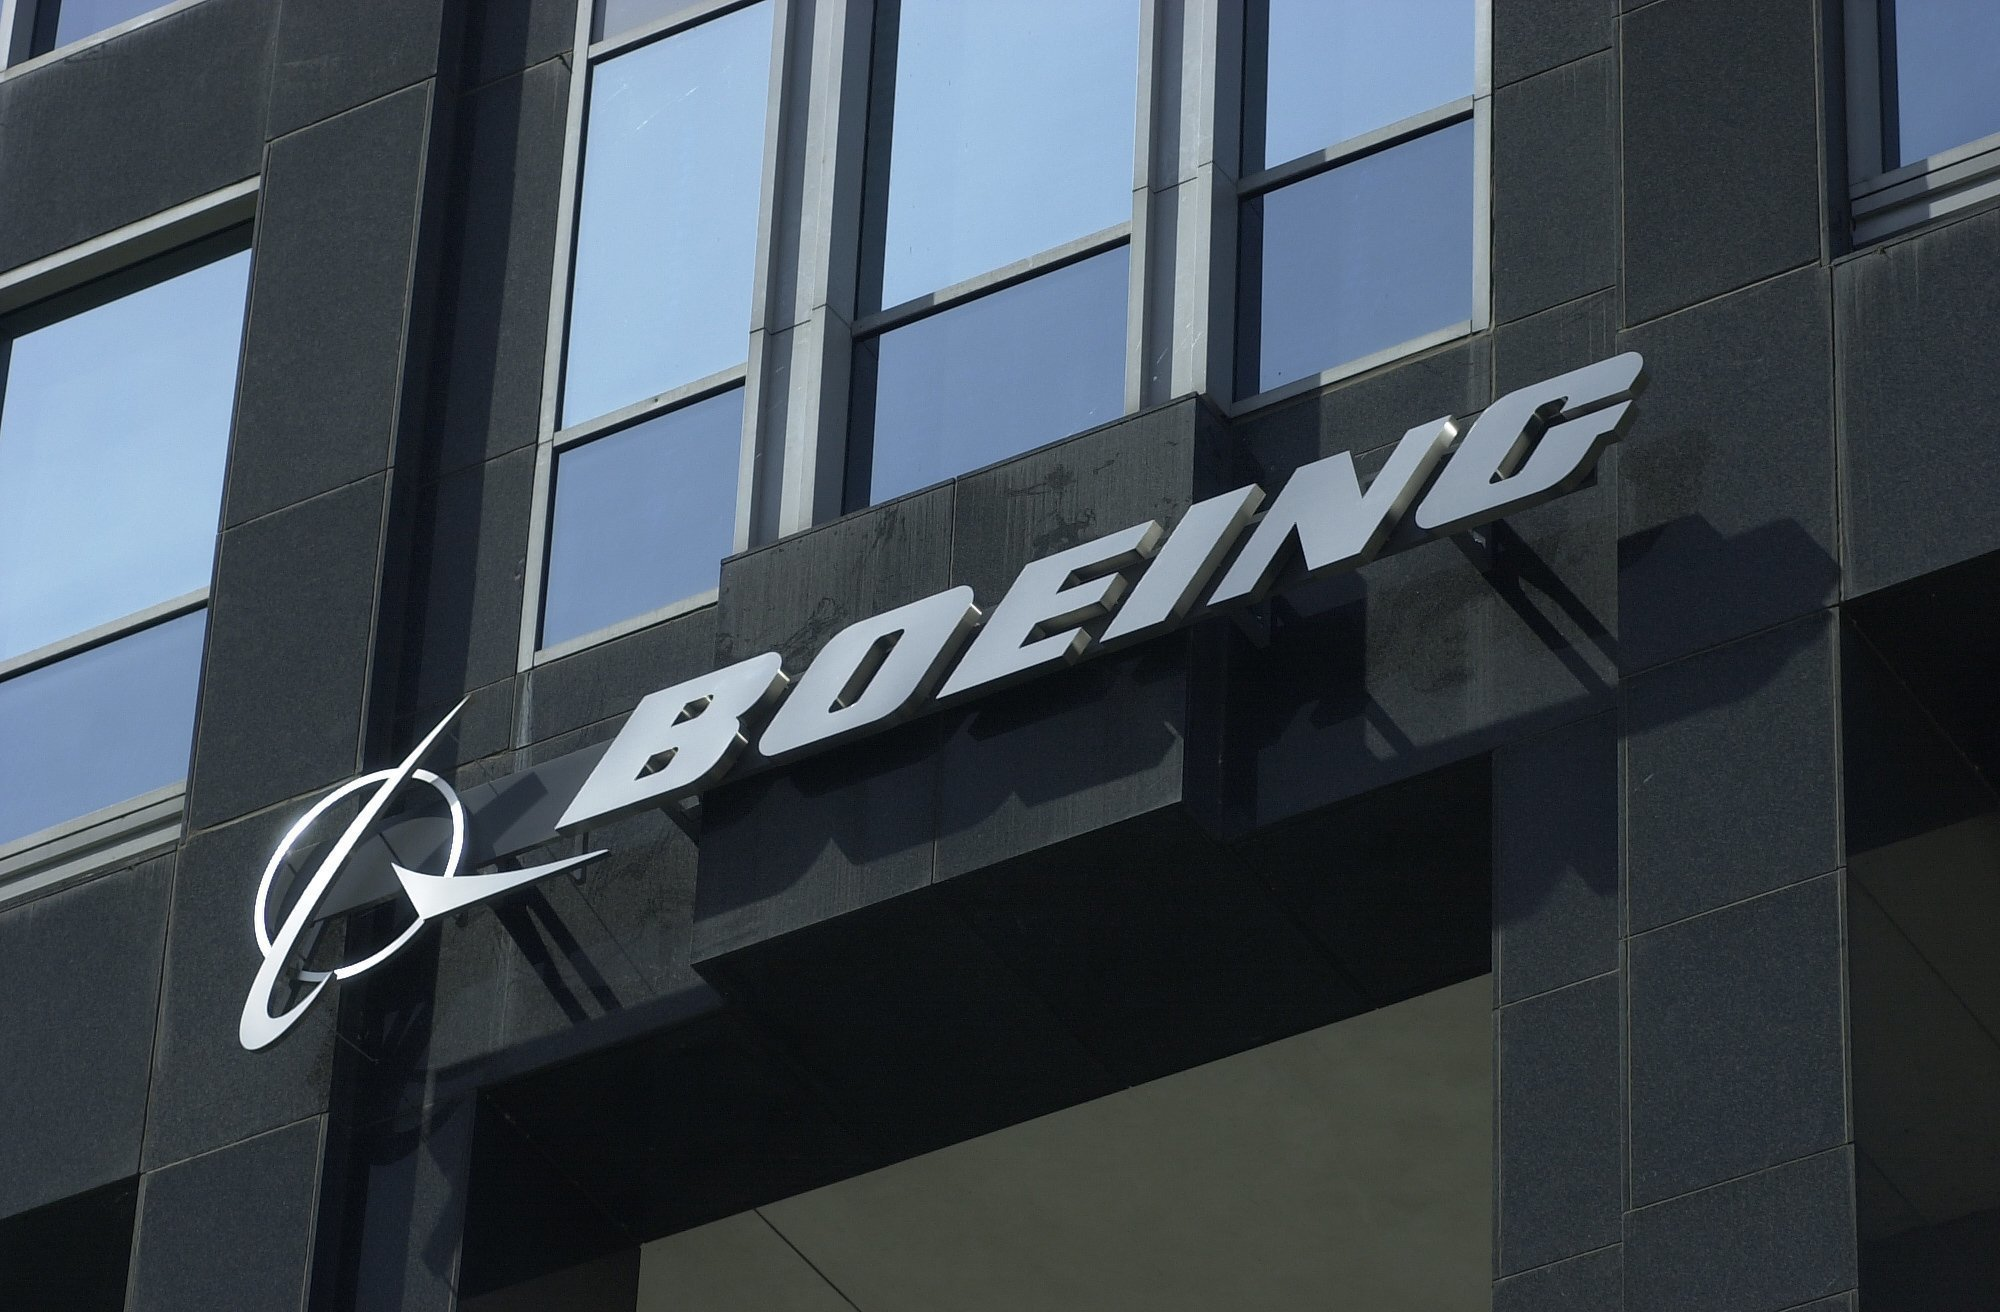 boeing companys goals and actions Boeing's starliner spacecraft will blast off atop united launch alliance's atlas 5 rocket, while spacex's crew dragon spacecraft will travel on the company's workhorse falcon 9 rocket.